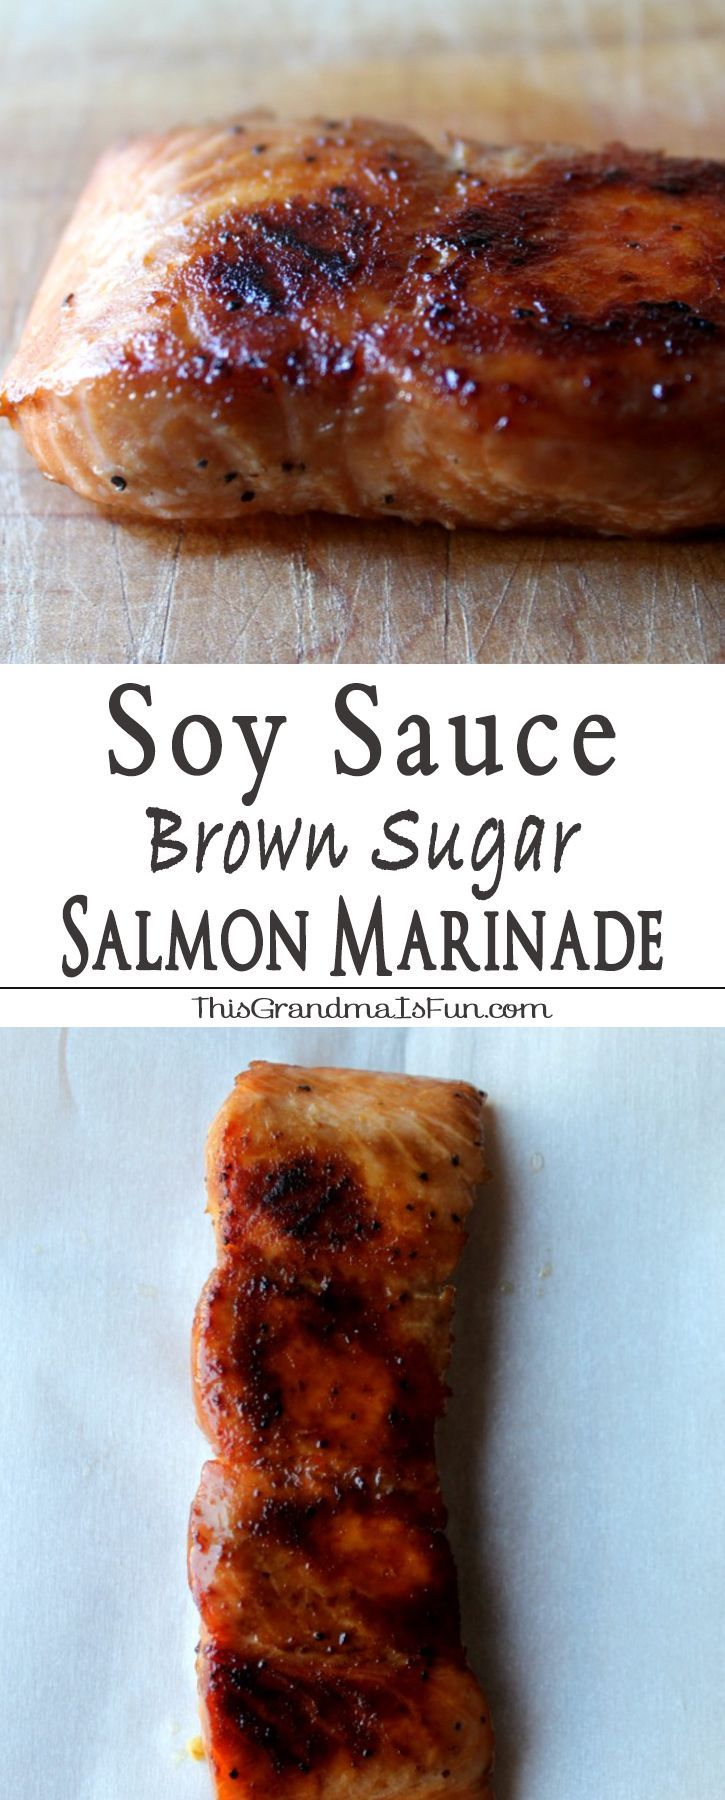 Soy Sauce Brown Sugar Marinade Even Salmon haters will love salmon with this Soy…